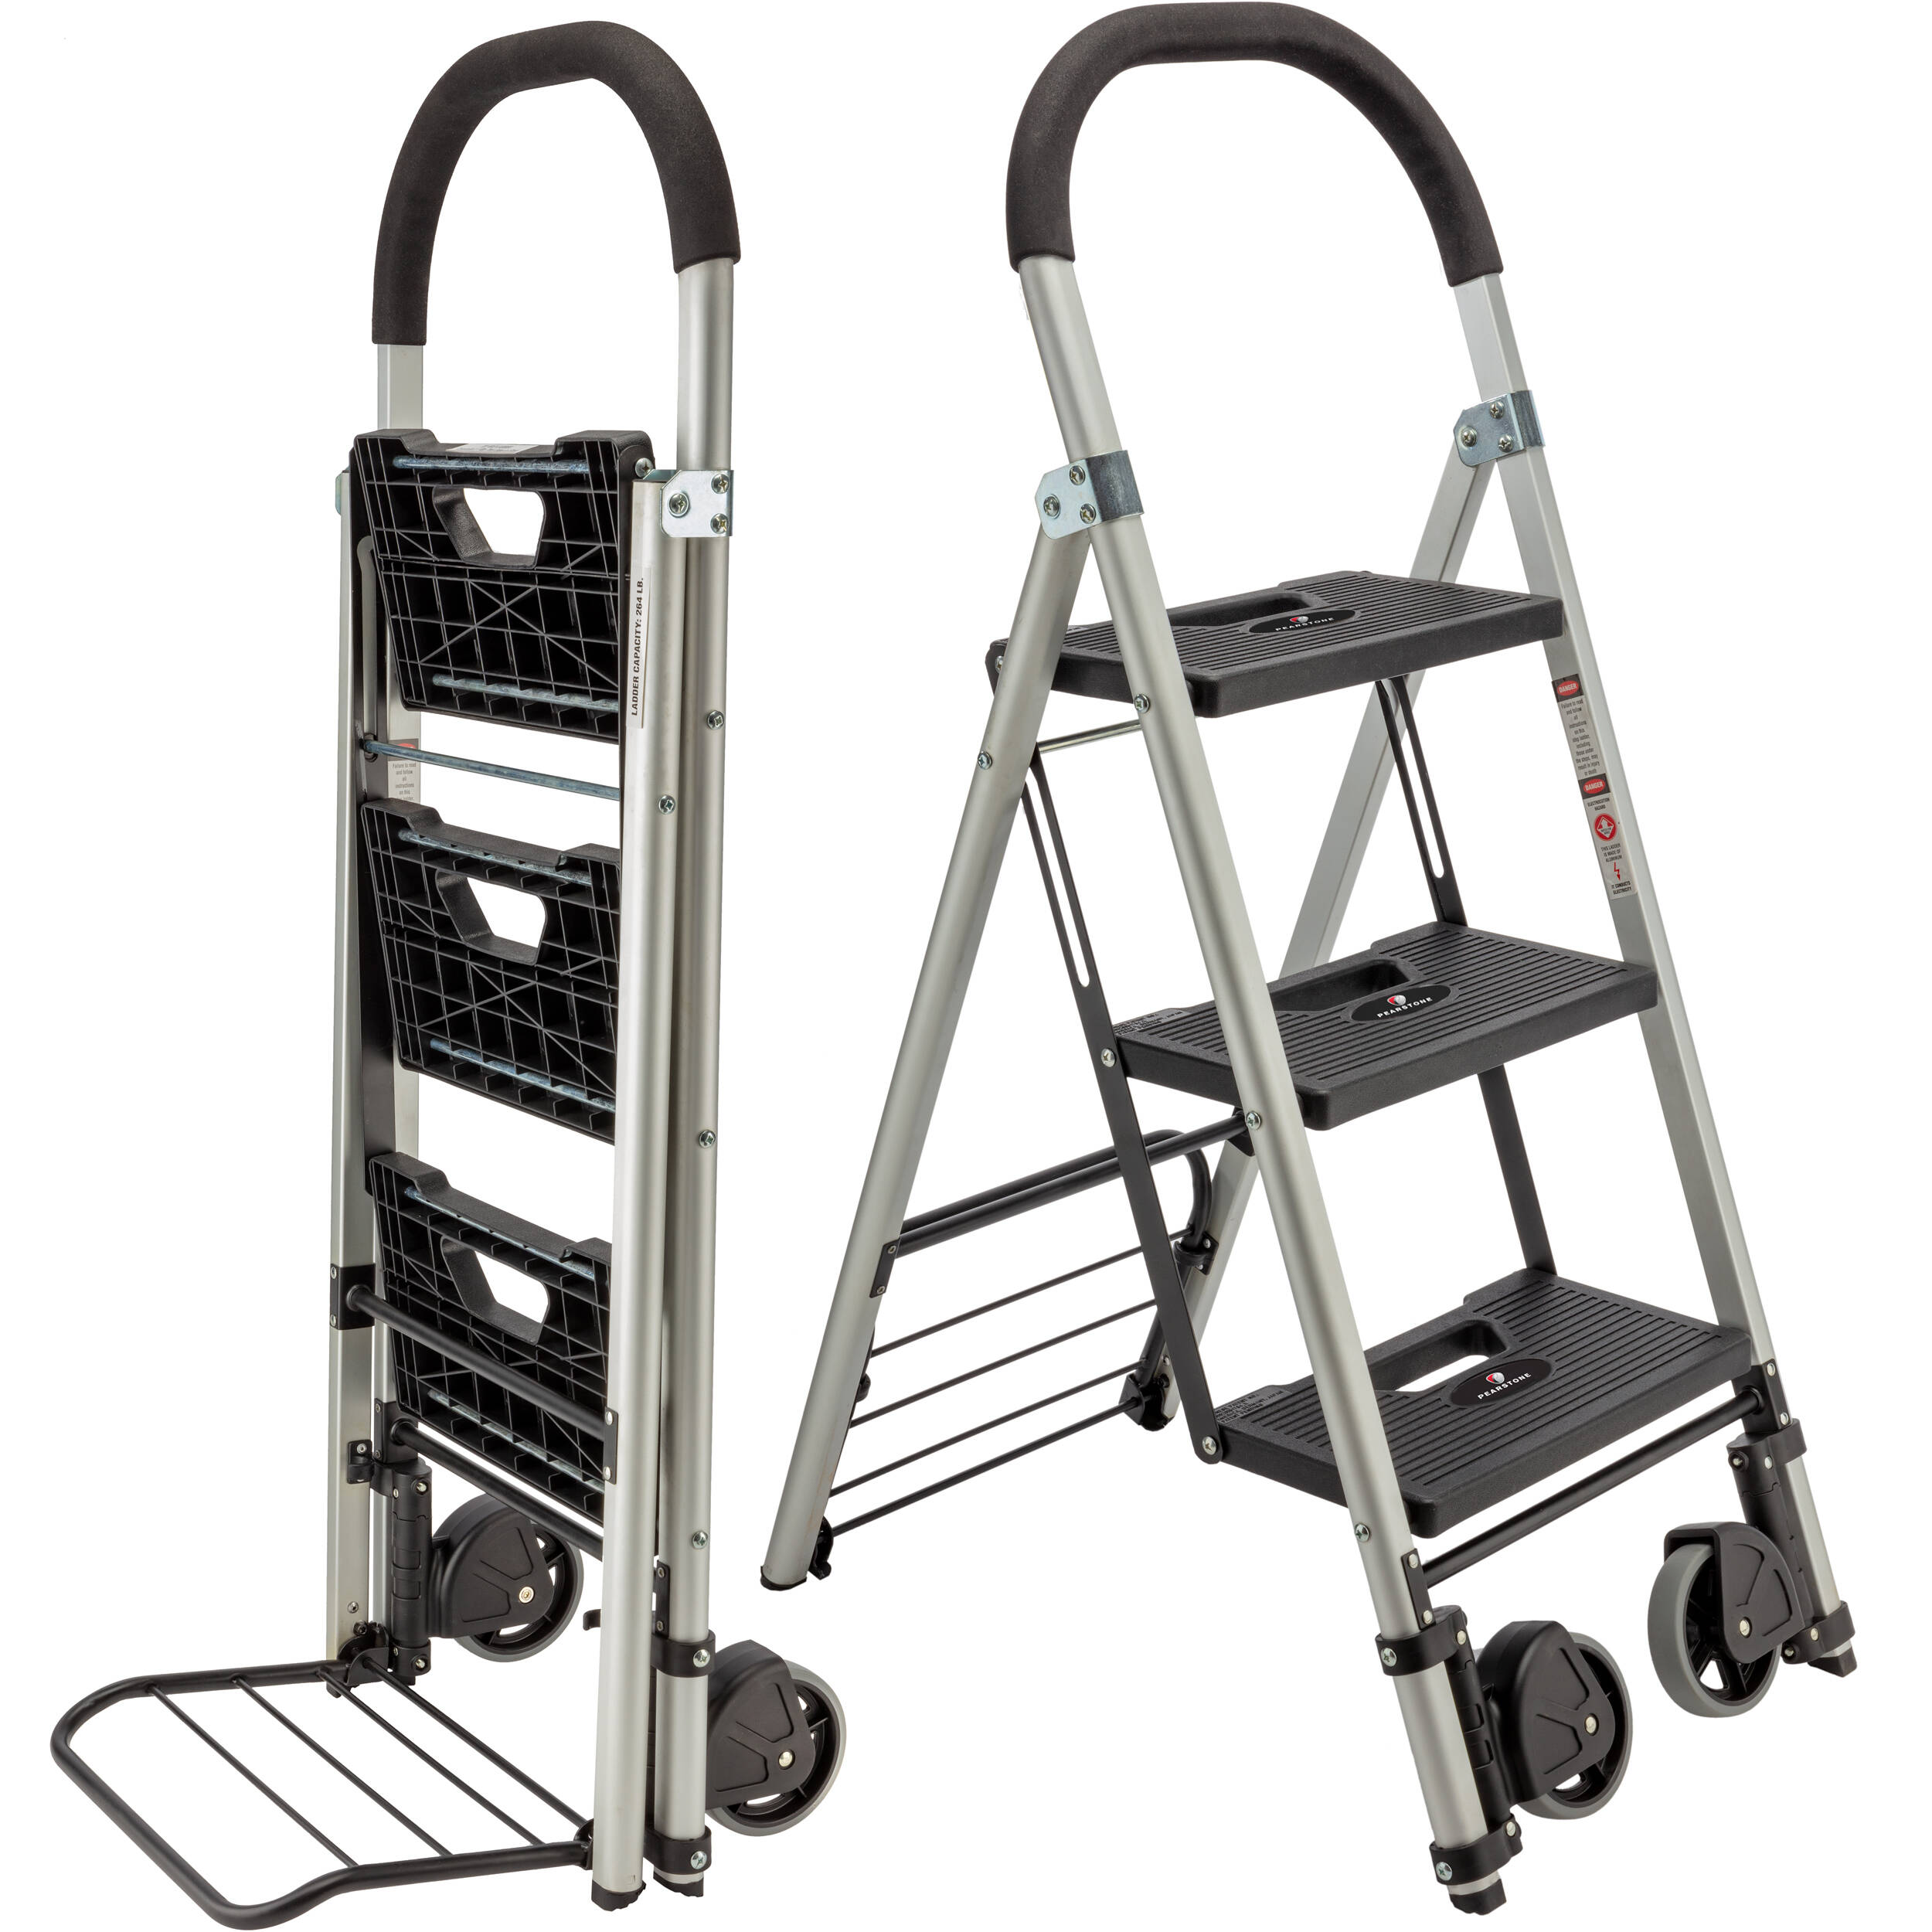 Pearstone Psl 3s 3 Step Hd Photographers Ladder With Wheels